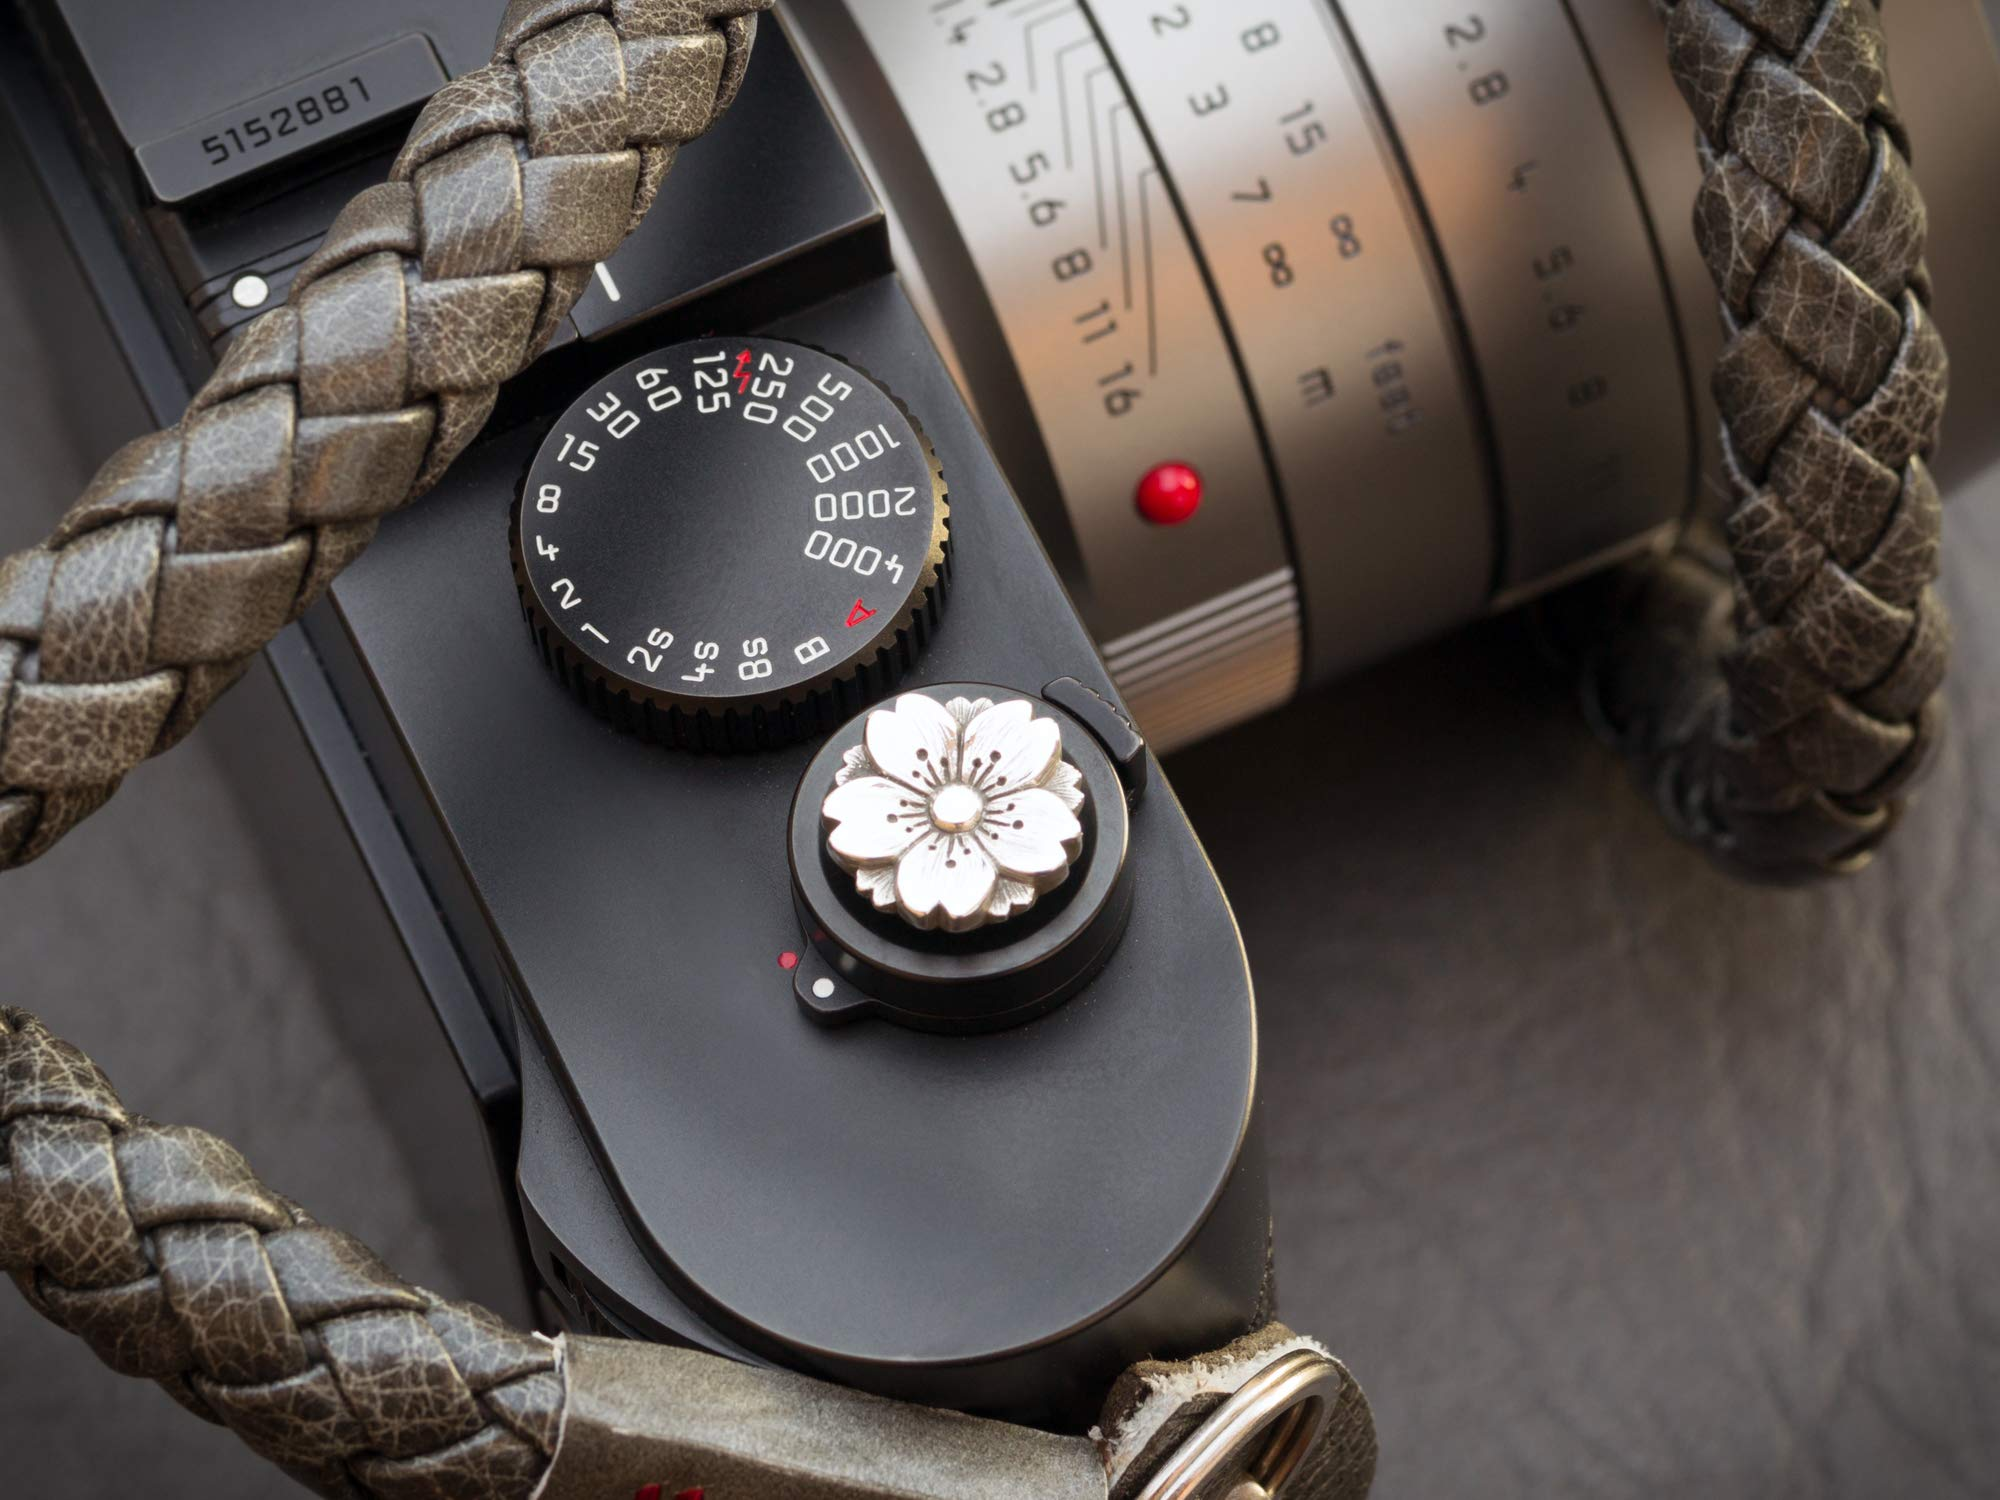 Jay Tsujimura Sterling Silver Soft Shutter Release Button Sakura for Leica M240 Leica M10 Handcrafted by Jay Tsujimura